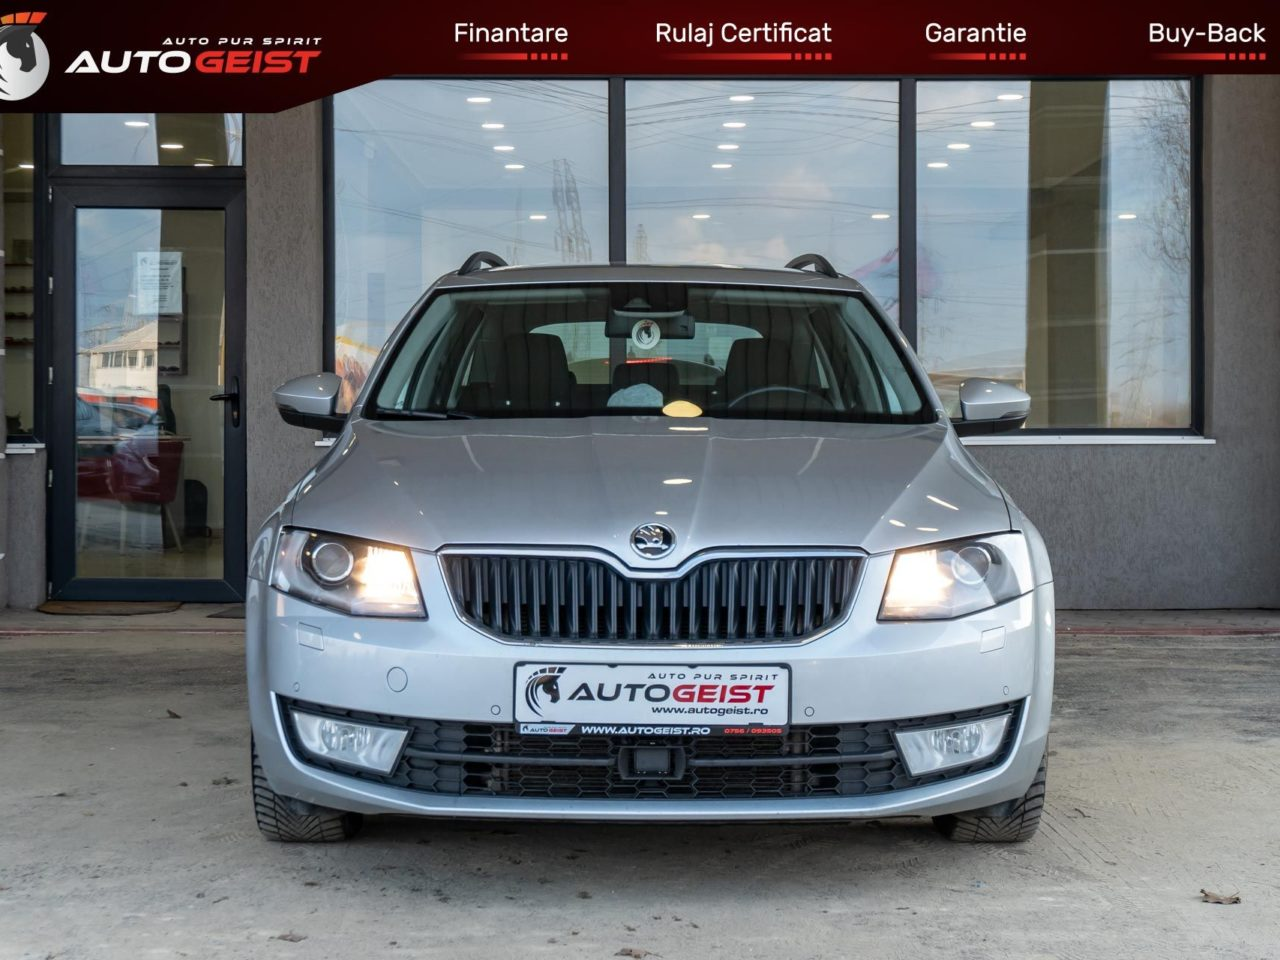 Skoda-Octavia-Break-05269